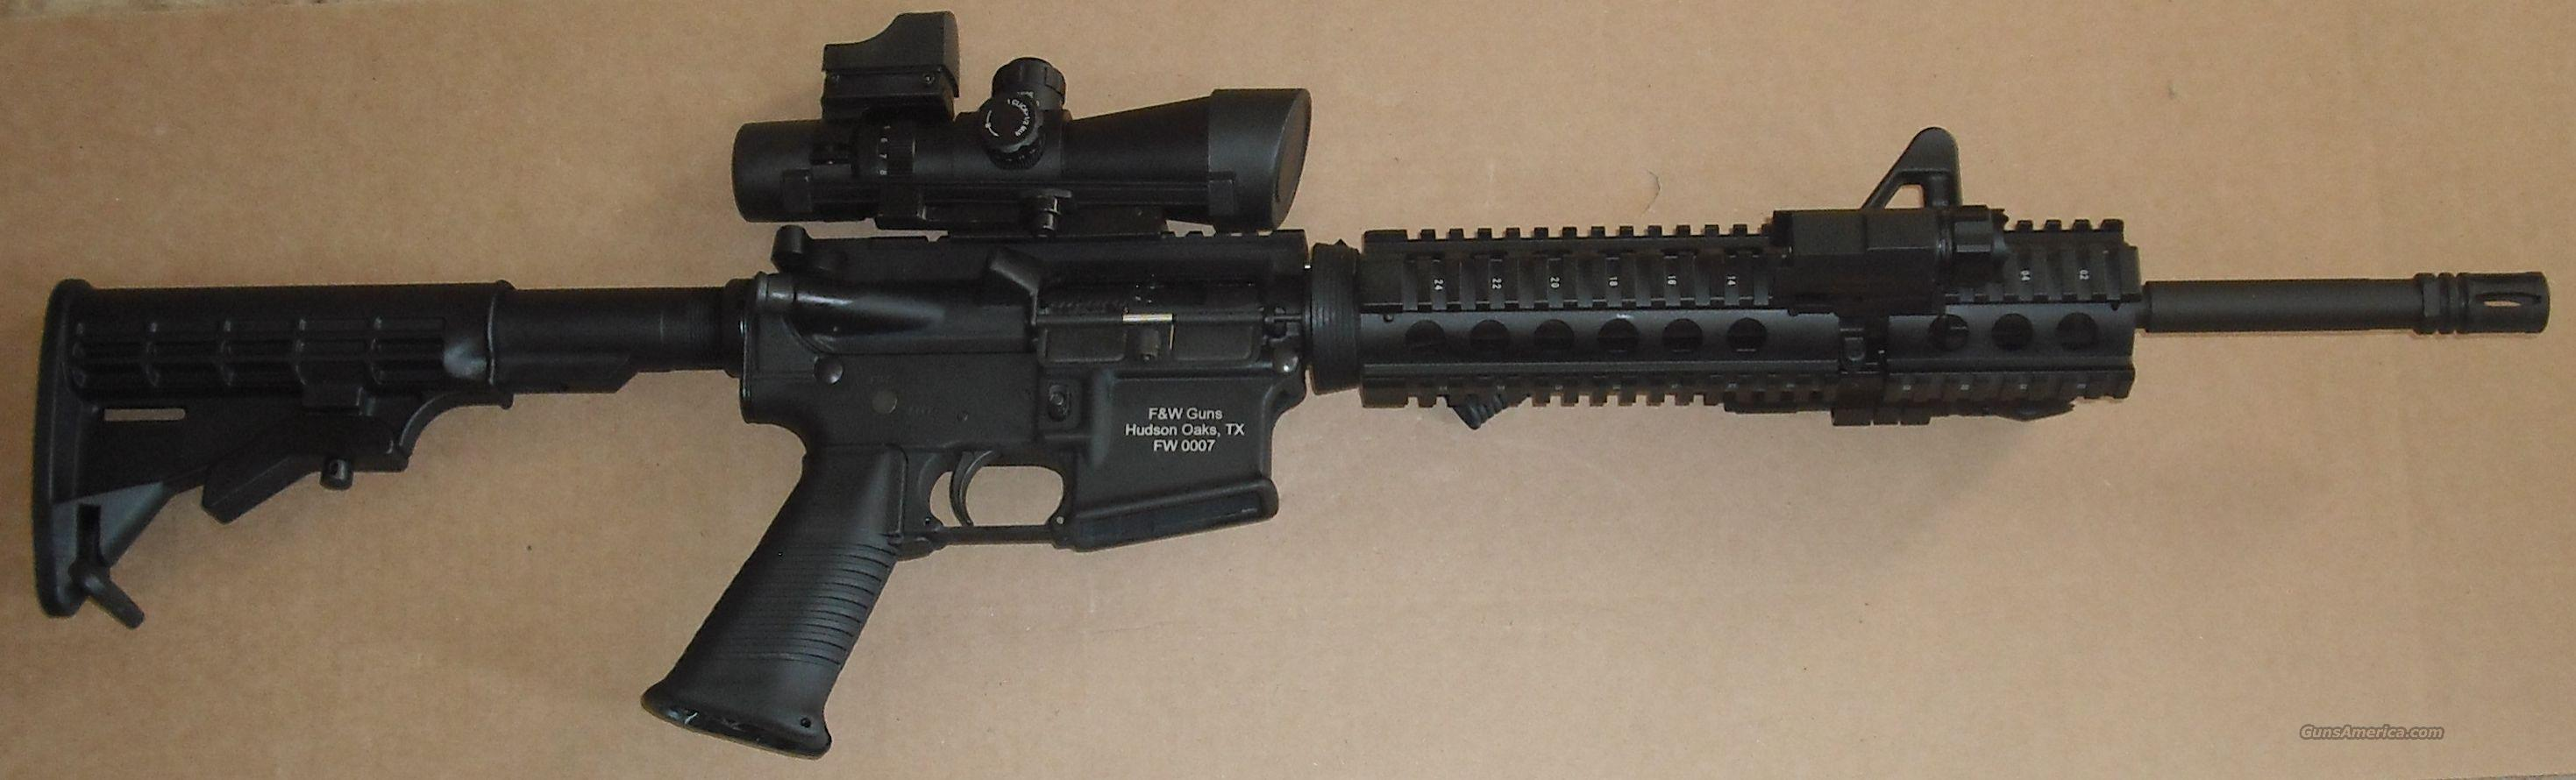 AR-15 With Quad rail and extras DPMS  Guns > Rifles > AR-15 Rifles - Small Manufacturers > Complete Rifle